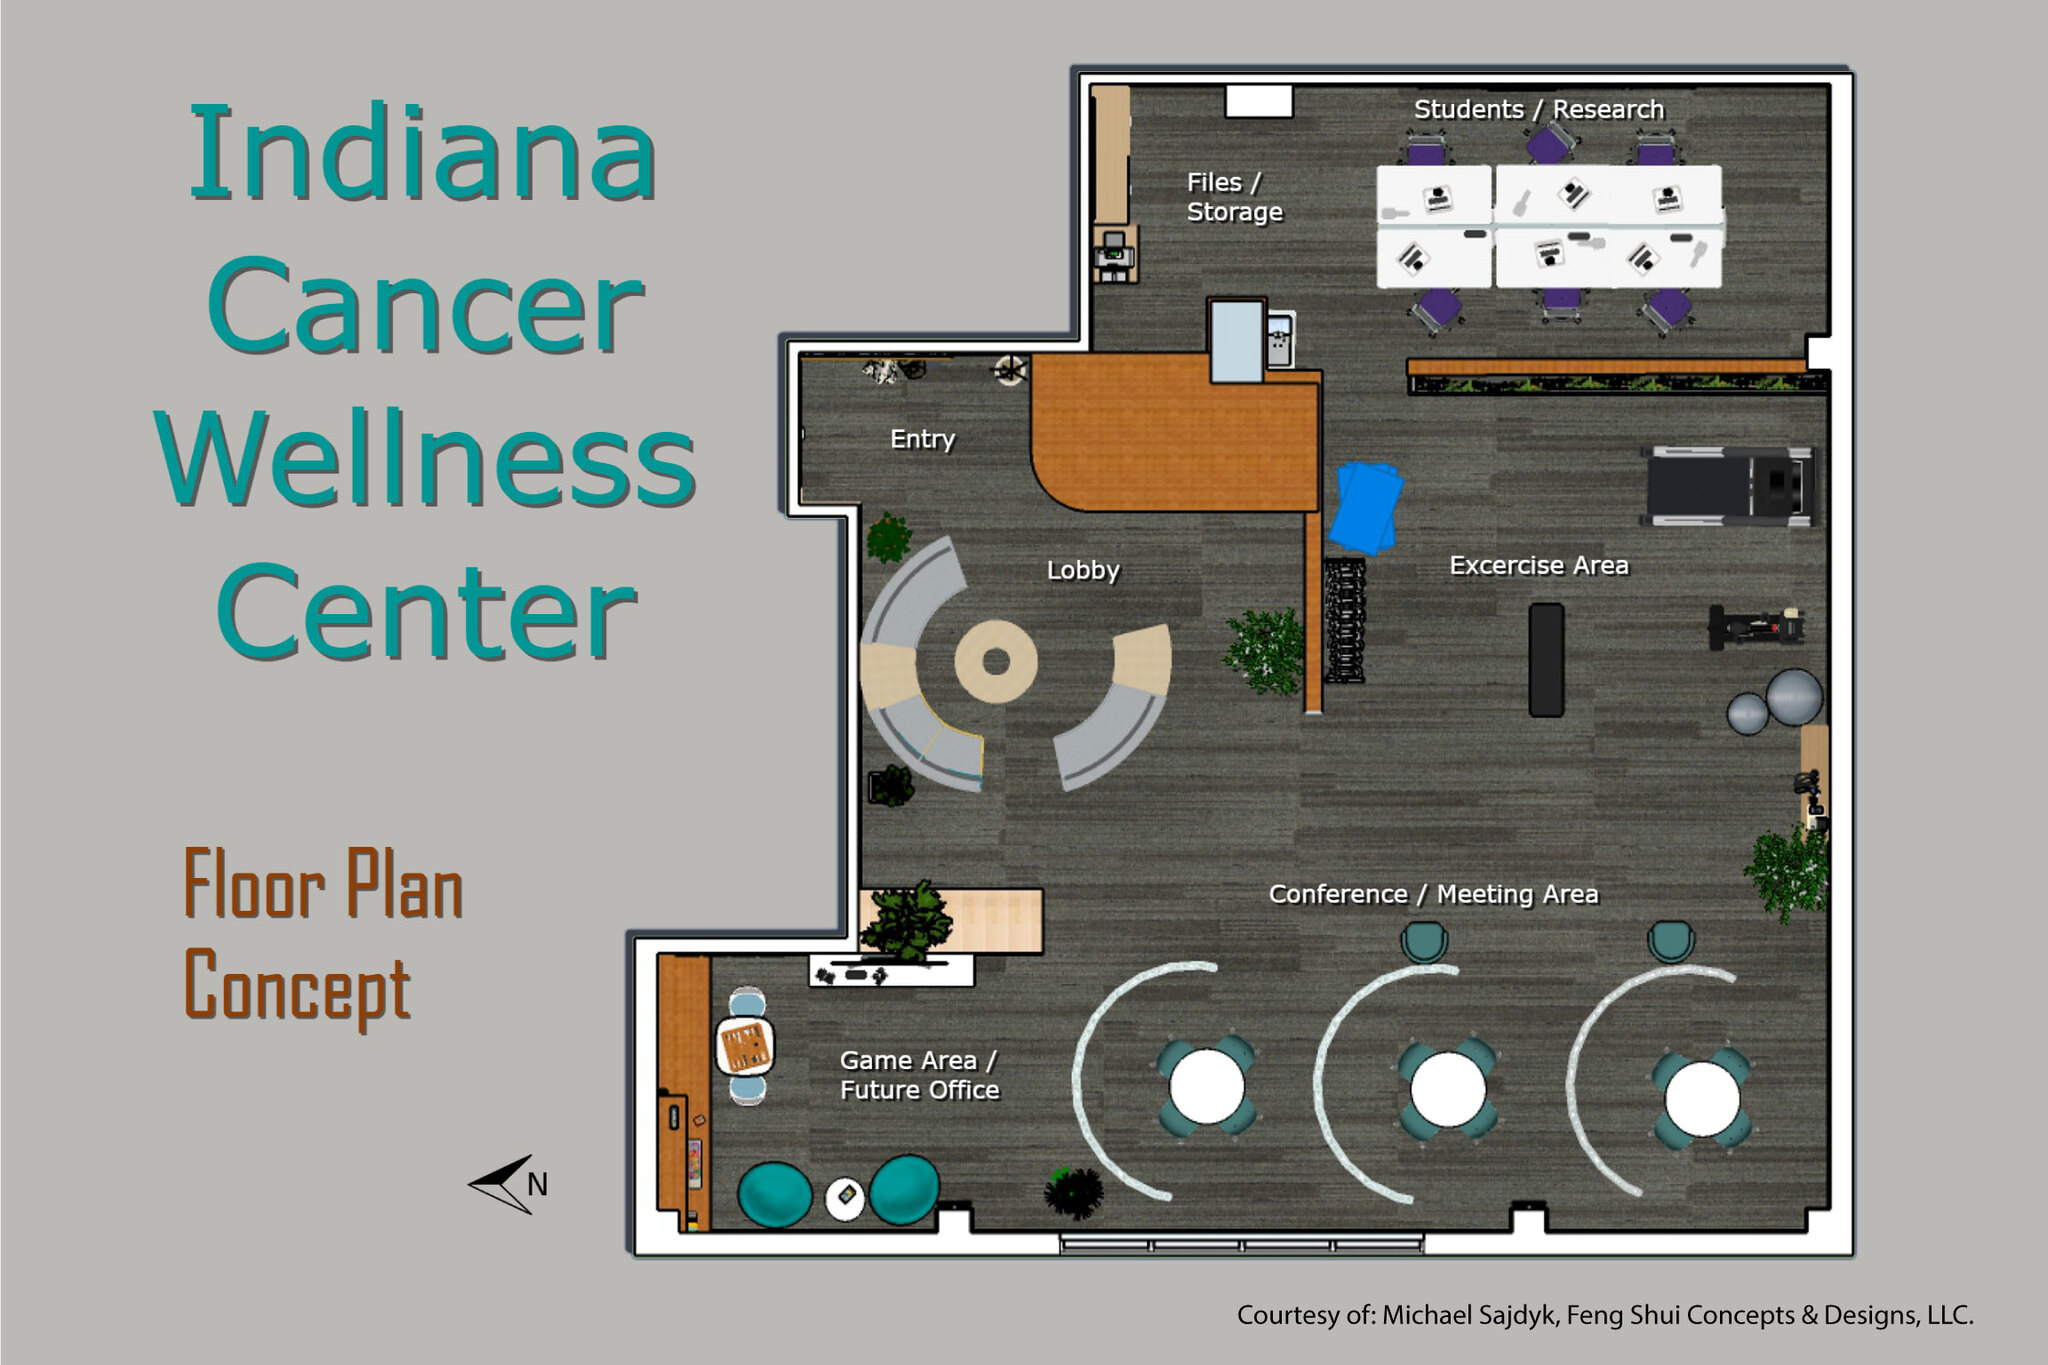 Diagram of the Indiana Cancer Wellness Center